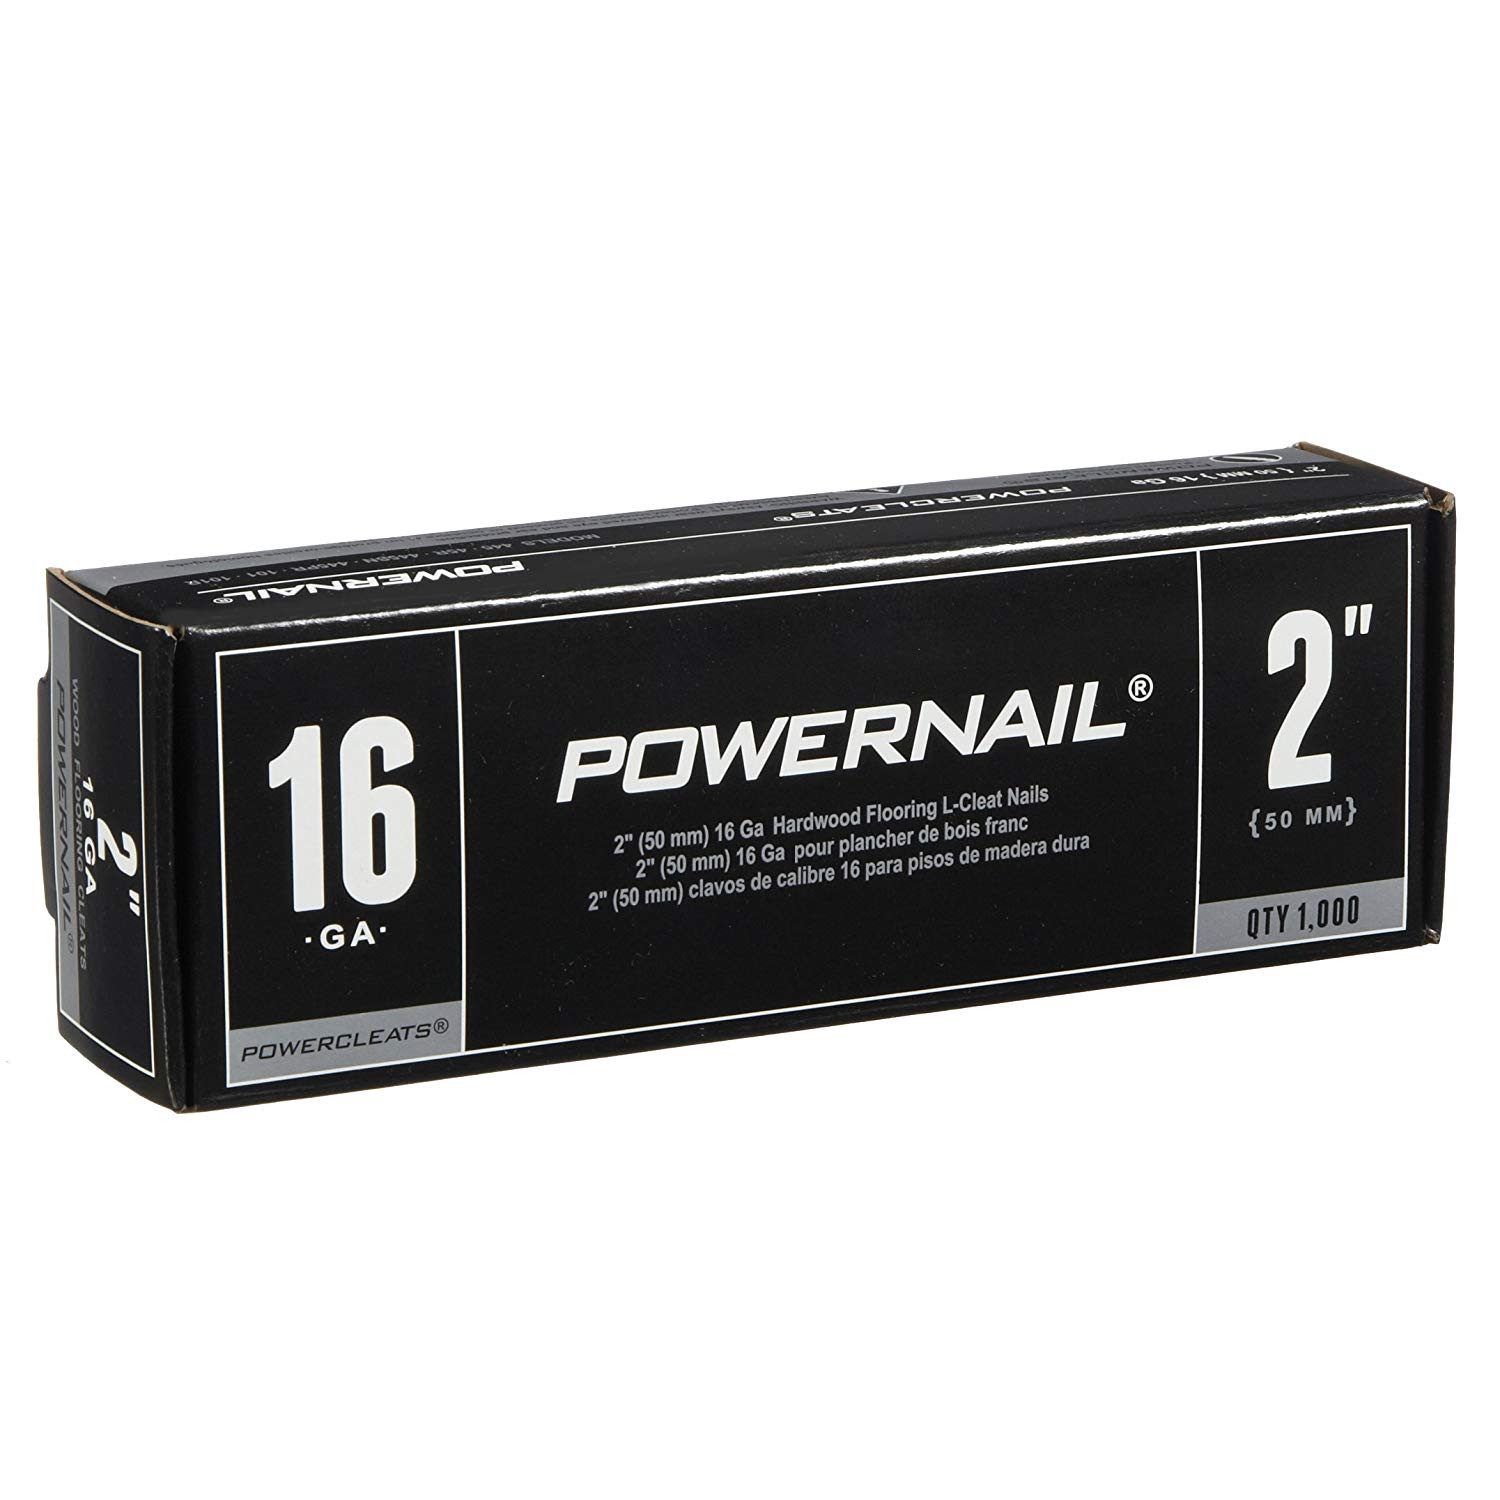 hardwood floor nailer prices of amazon com powernail powercleat 16ga 2 l cleat box of 5000 home in amazon com powernail powercleat 16ga 2 l cleat box of 5000 home improvement